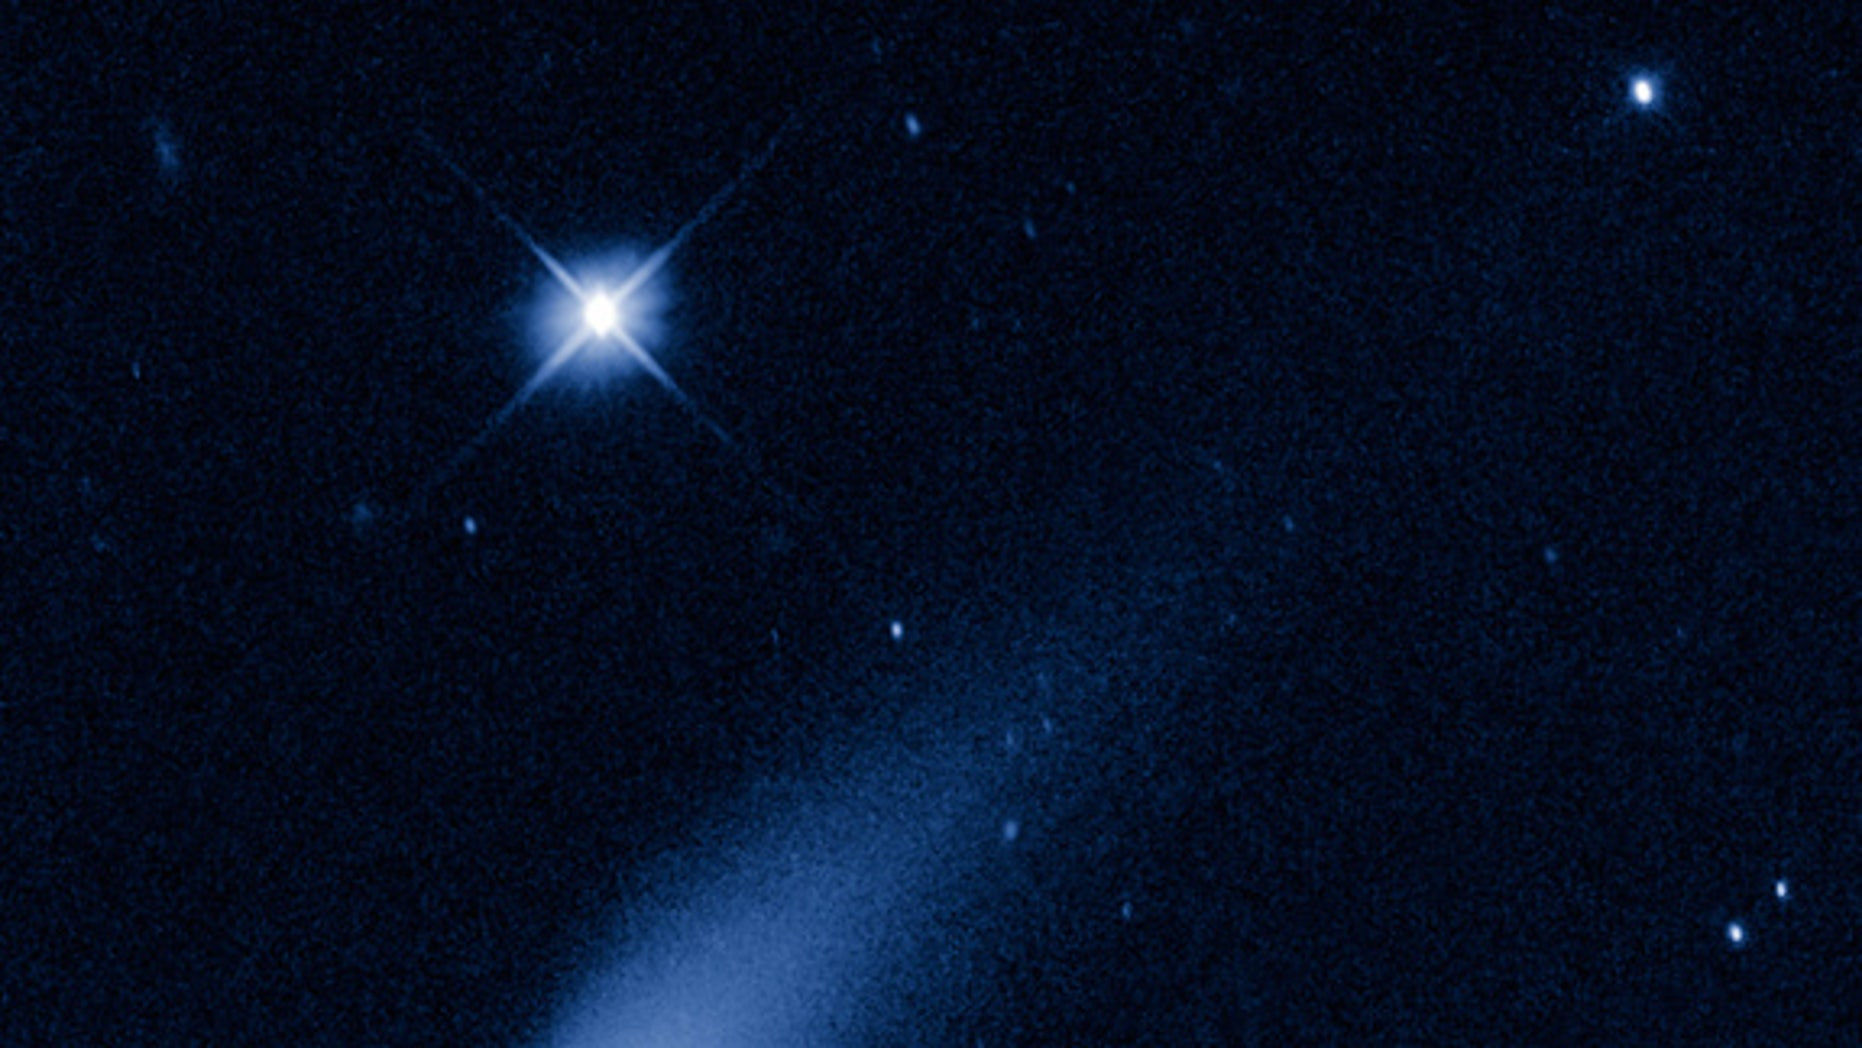 May 8, 2013: The Hubble Space Telescope captured this view of Comet ISON, C/2012 S1 (ISON) as it streaked between the orbits of Jupiter and Mars at a speed of about 48,000 mph.